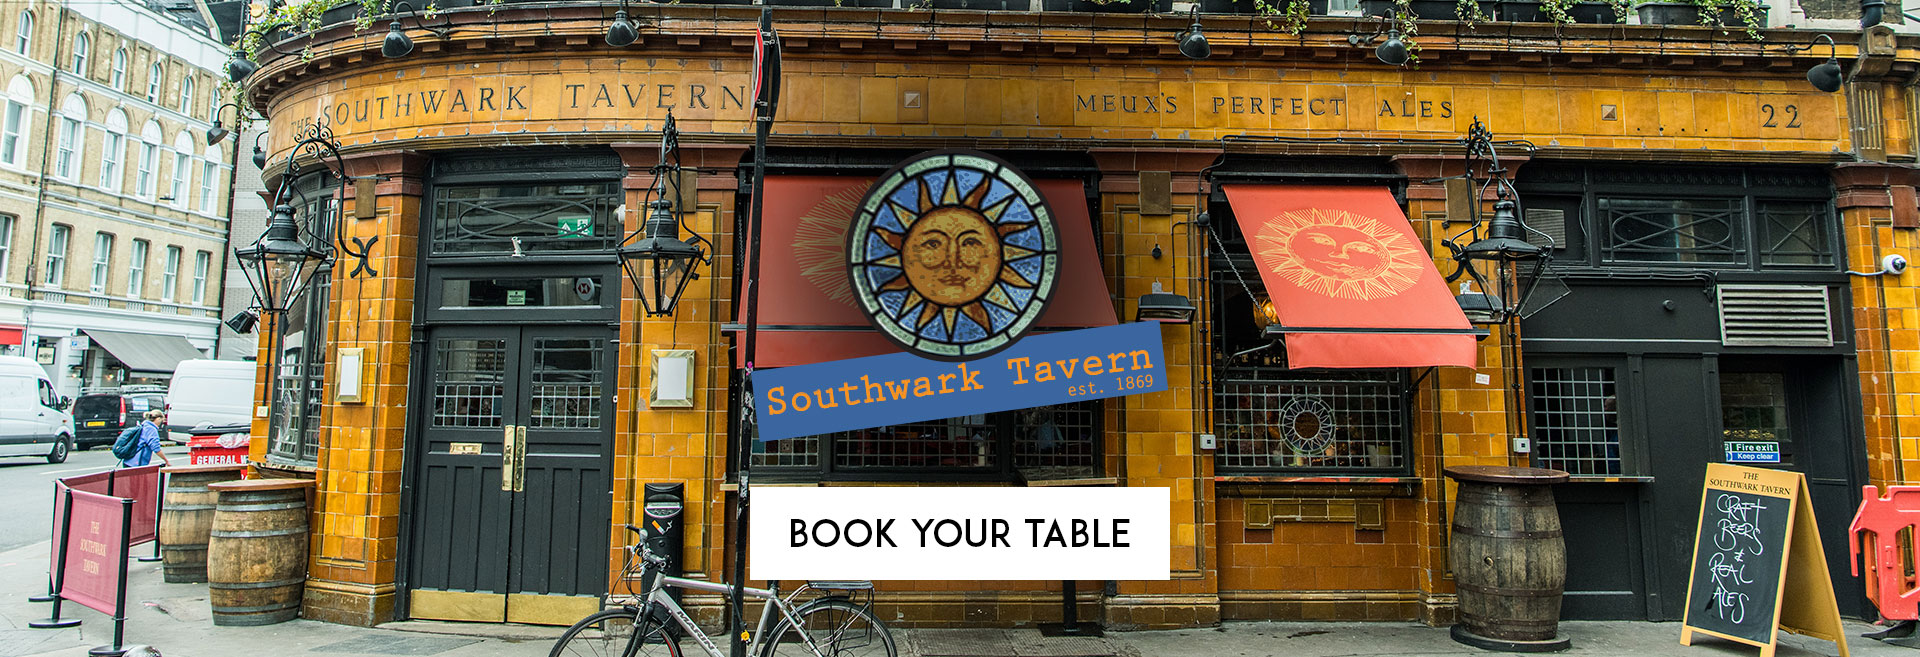 Book Your Table The Southwark Tavern